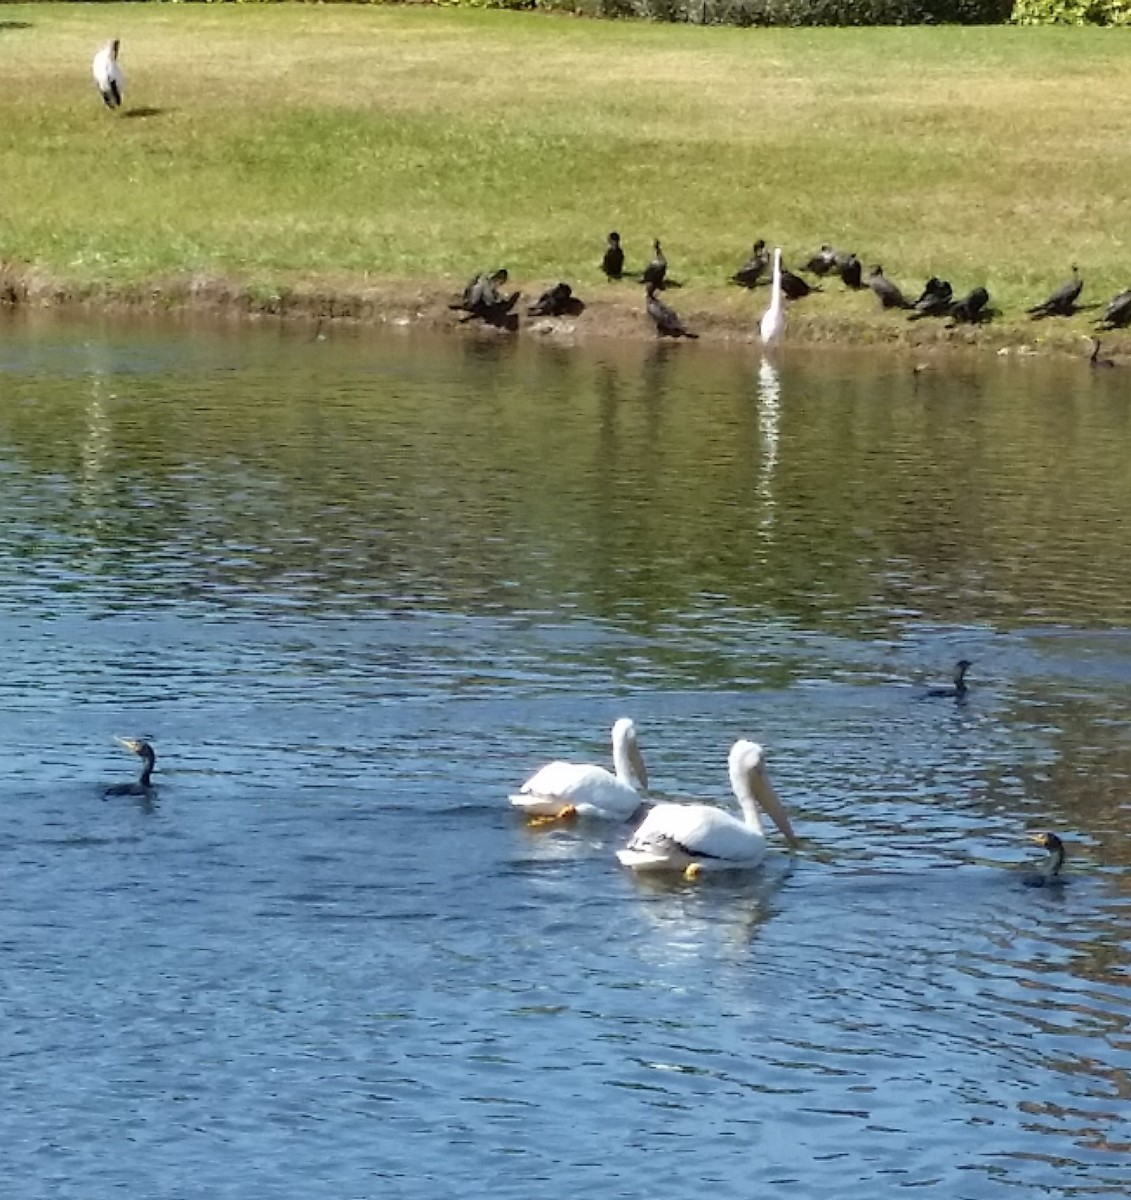 Not swans. The very large beak alerts you that these big birds are white pelicans.